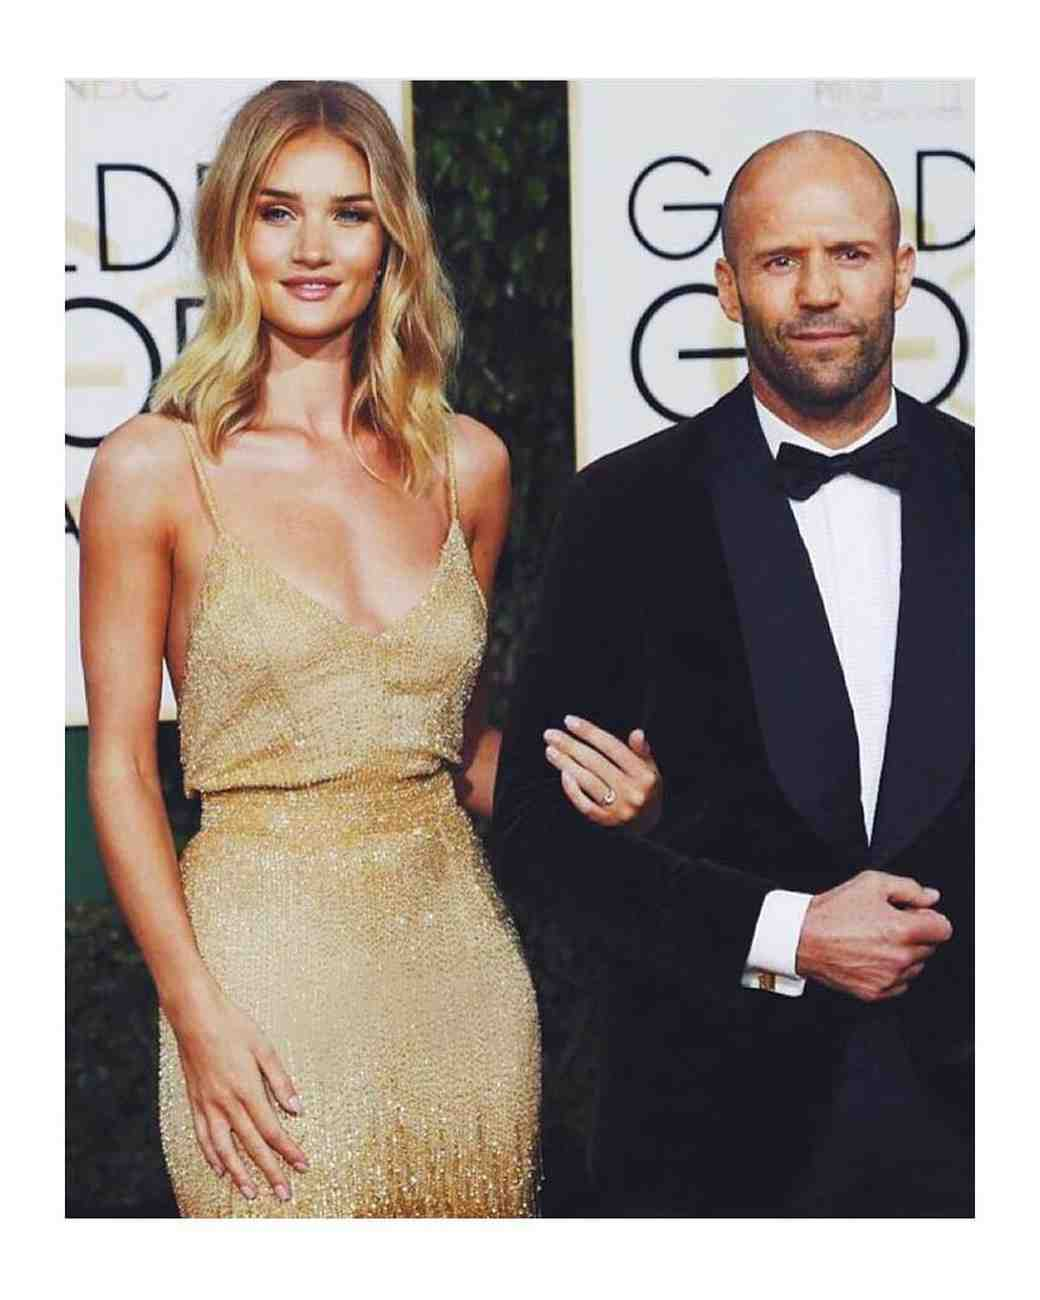 engaged-instagram-rosie-hw-jason-statham-0316.jpg